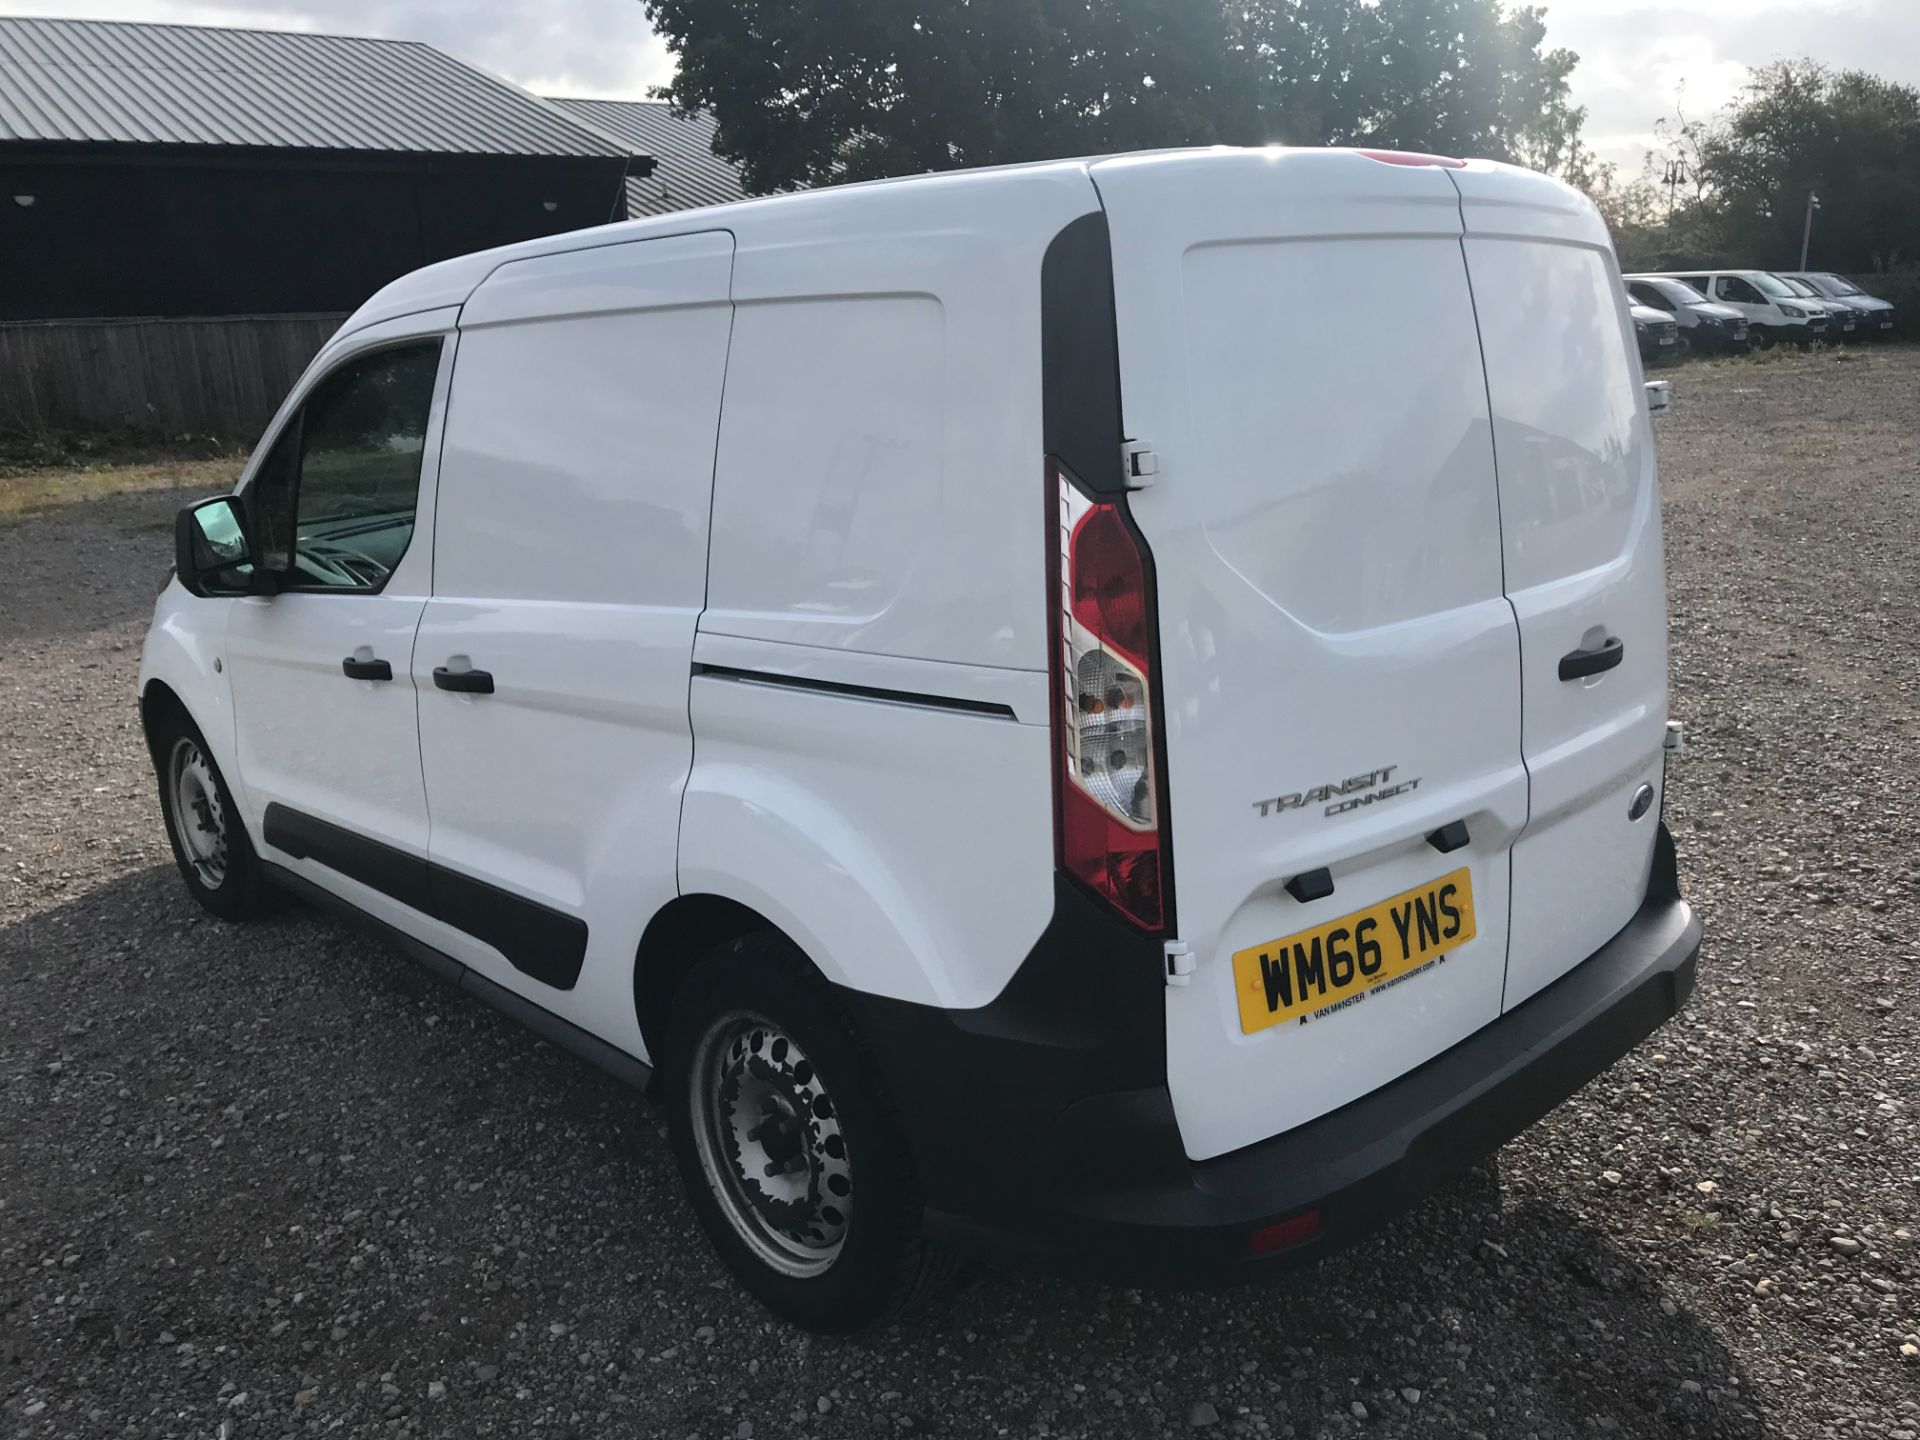 2016 Ford Transit Connect 1.5 Tdci 100Ps Van EURO 6 (WM66YNS) Image 6